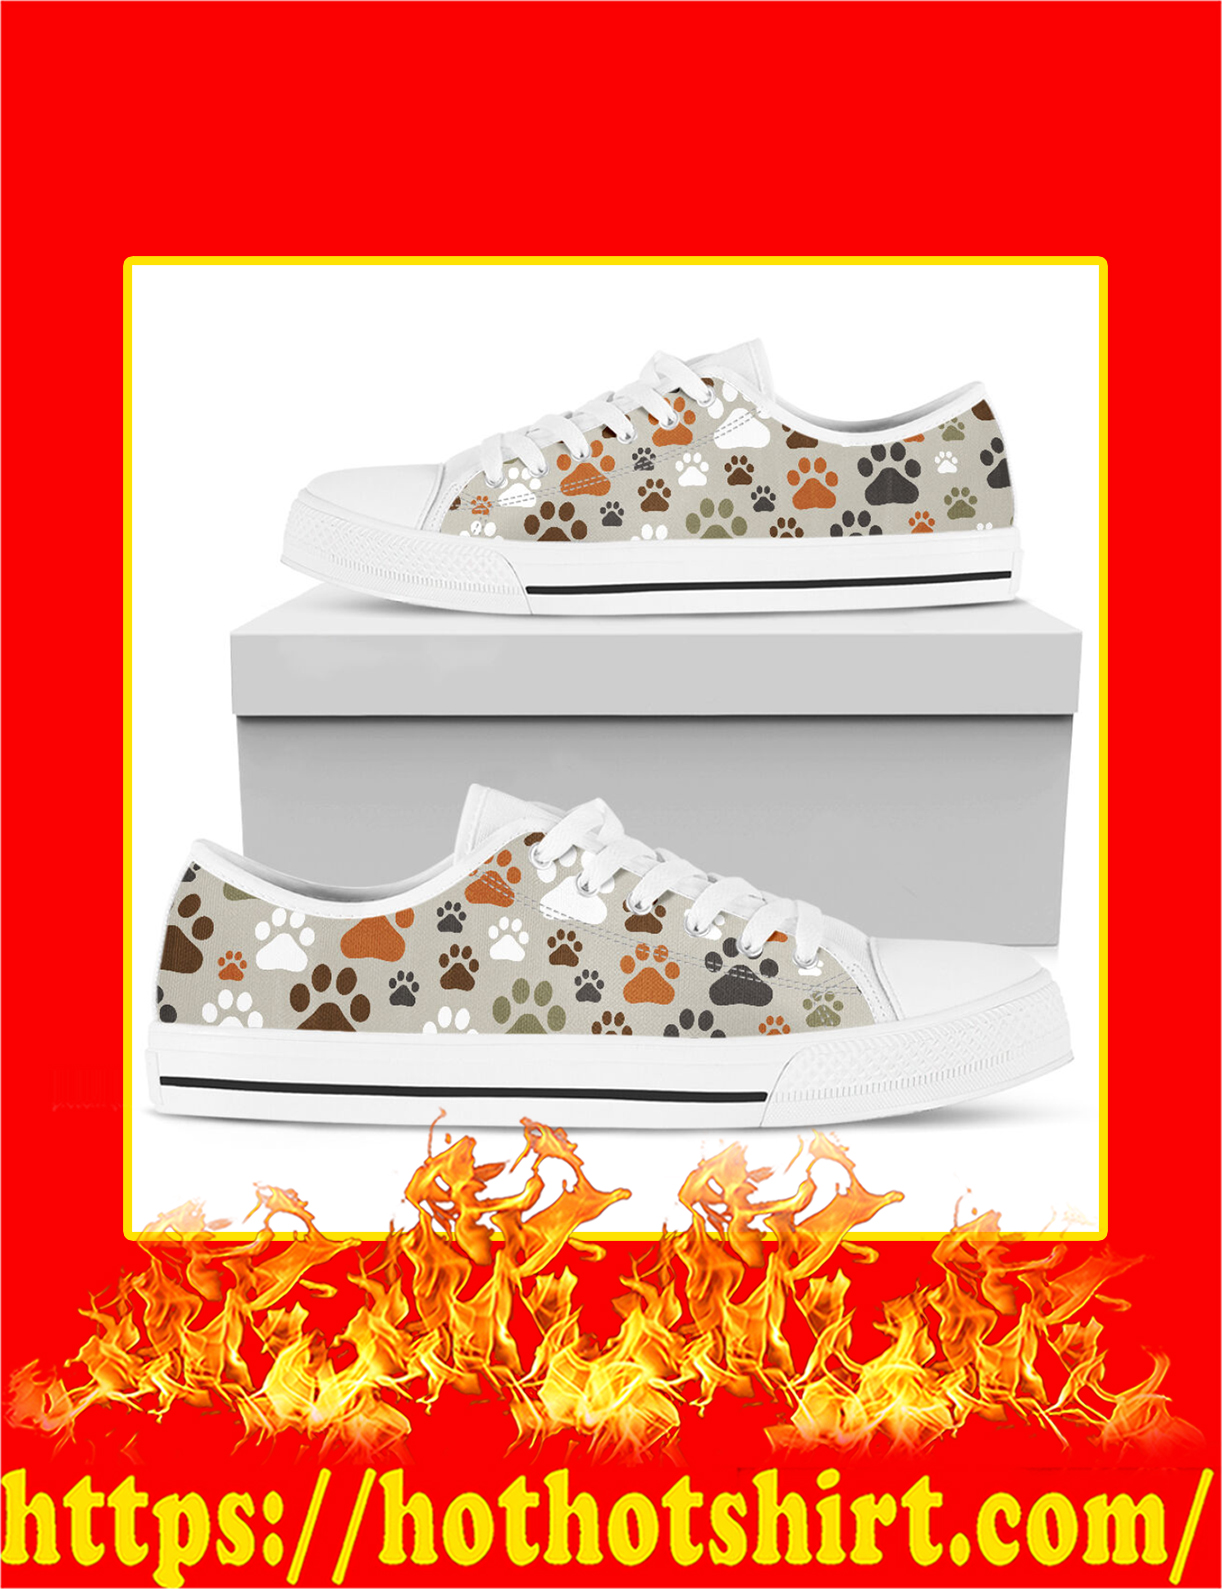 Dog Paw Low Top Shoes - Pic 2